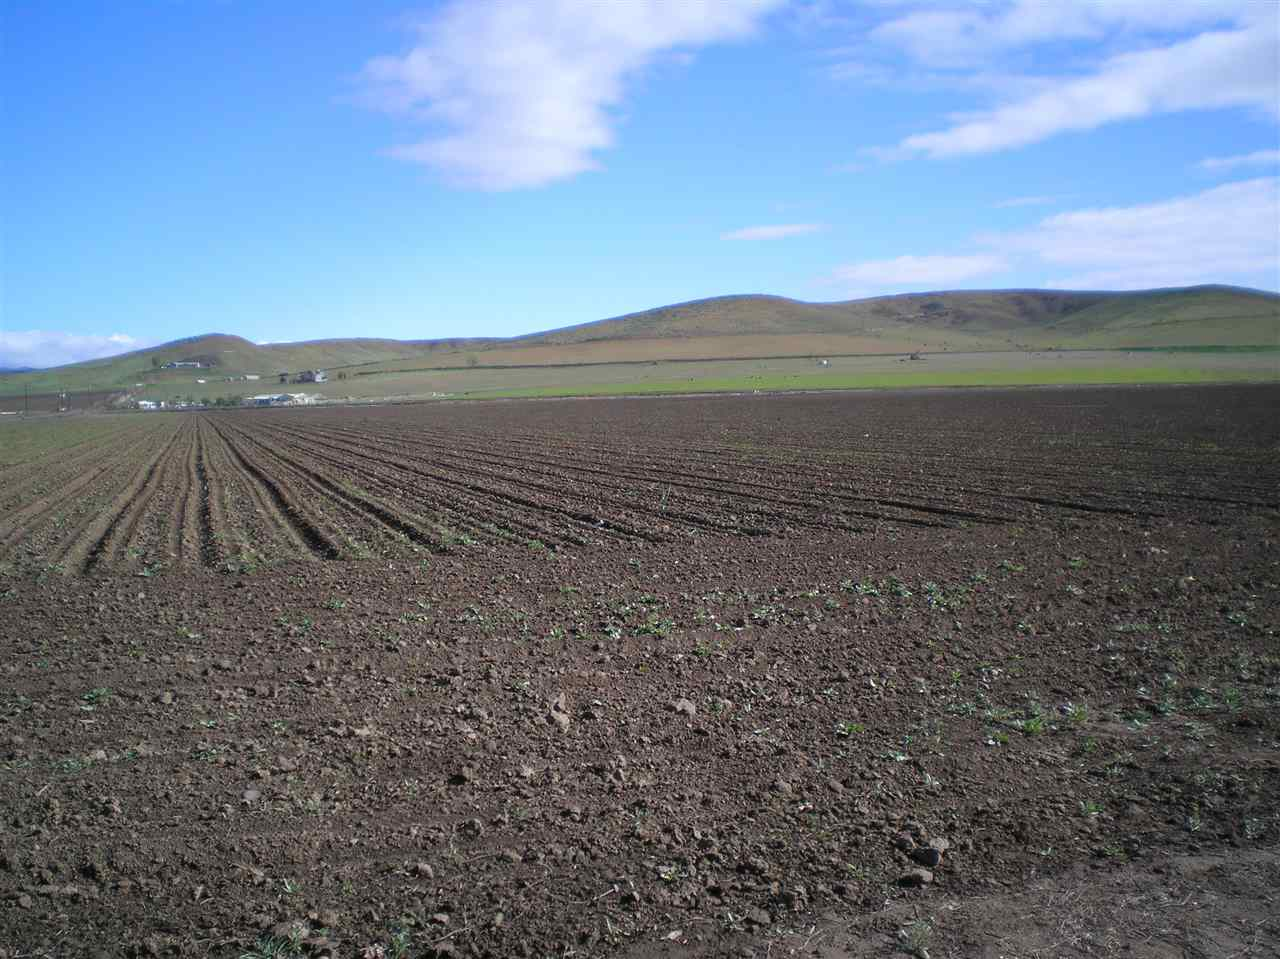 Farm / Ranch for Sale at Tbd Indianhead Road Weiser, Idaho 83672